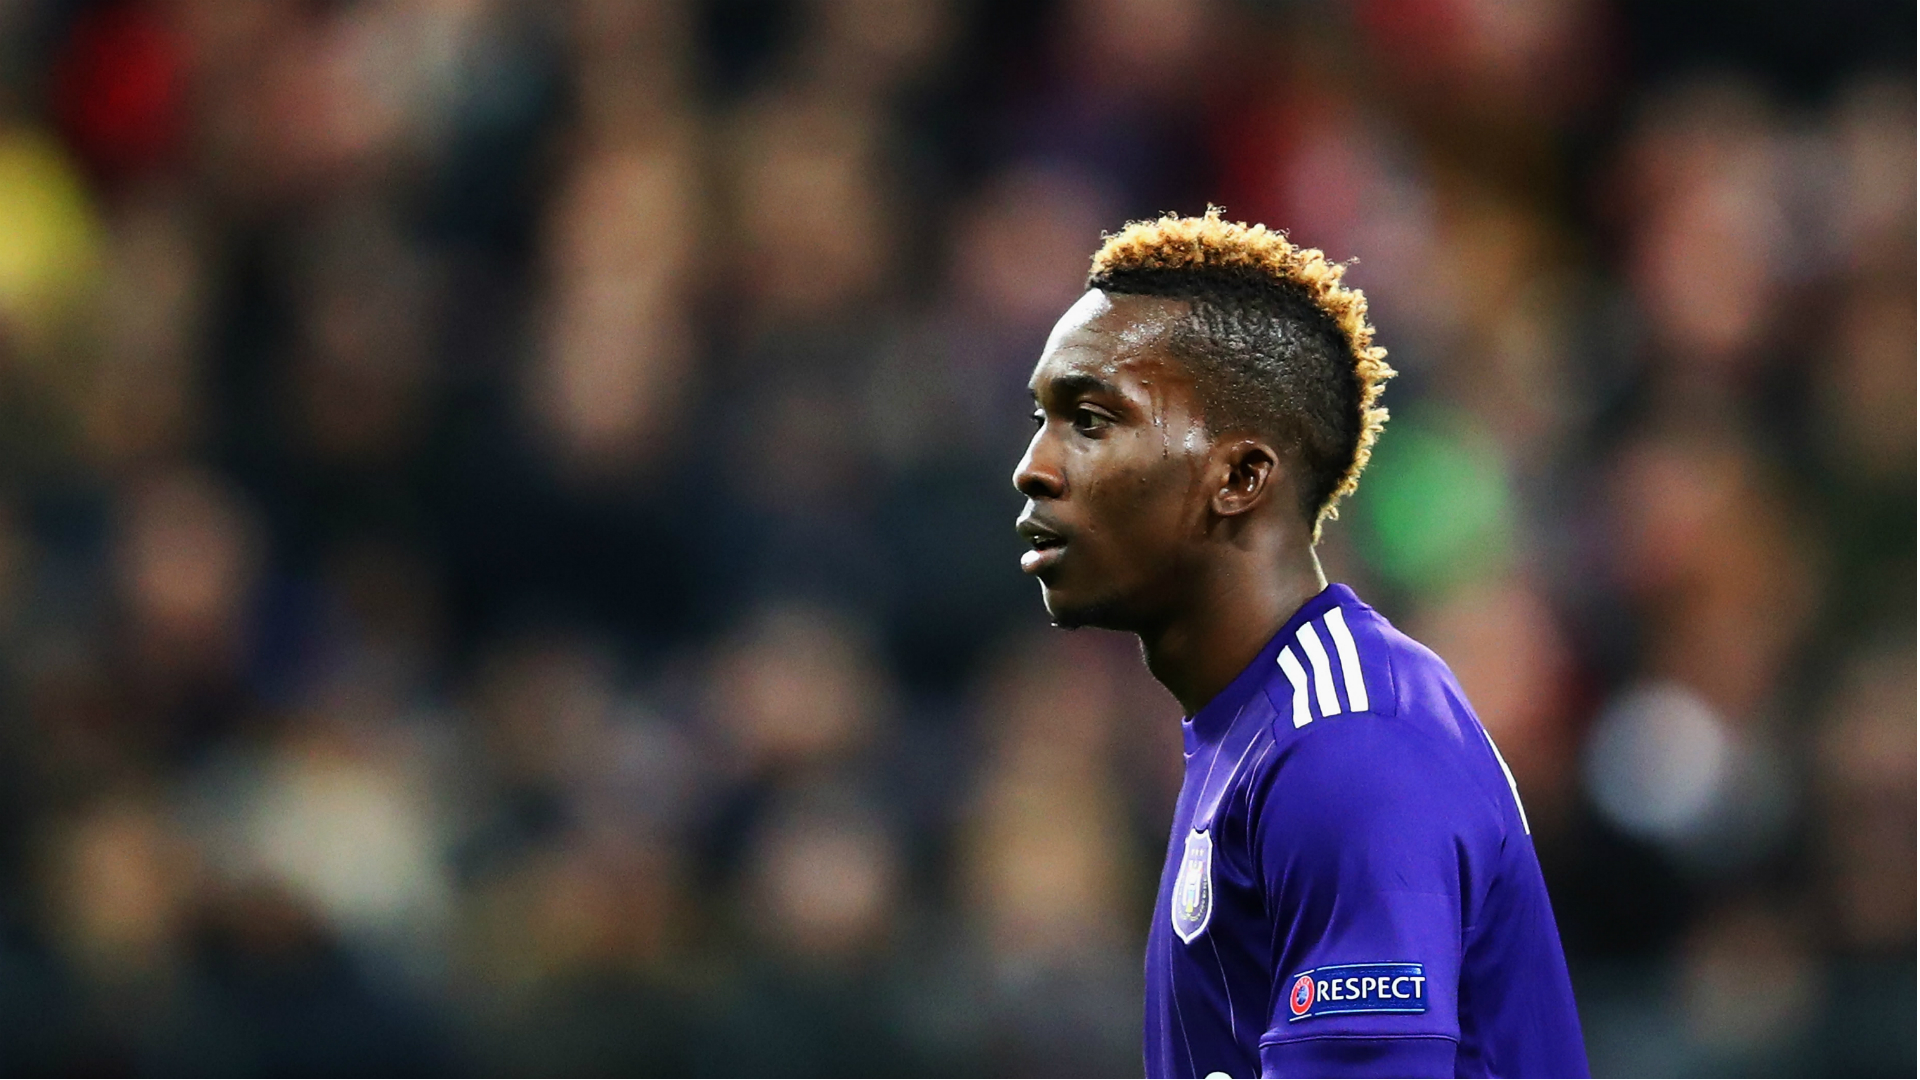 Onyekuru reveals how Anderlecht denied him a chance to play in Premier League and World Cup